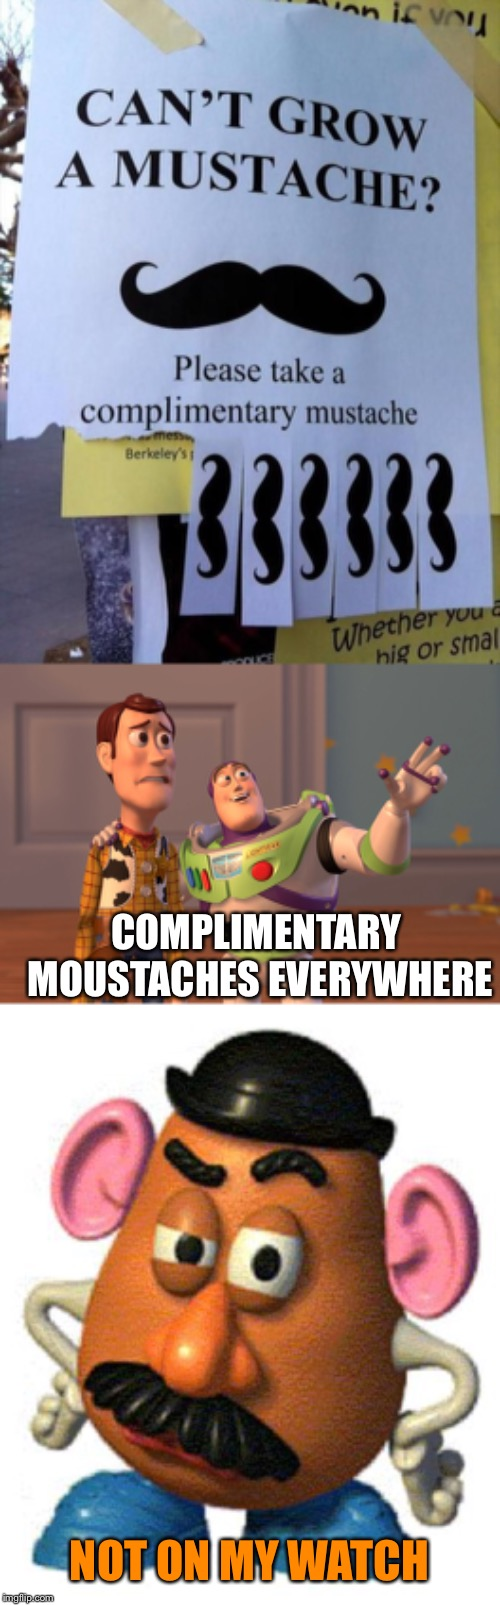 Mr Potato head is not so complimentary |  COMPLIMENTARY MOUSTACHES EVERYWHERE; NOT ON MY WATCH | image tagged in mr potato head,memes,x x everywhere,toy story,moustache,free | made w/ Imgflip meme maker